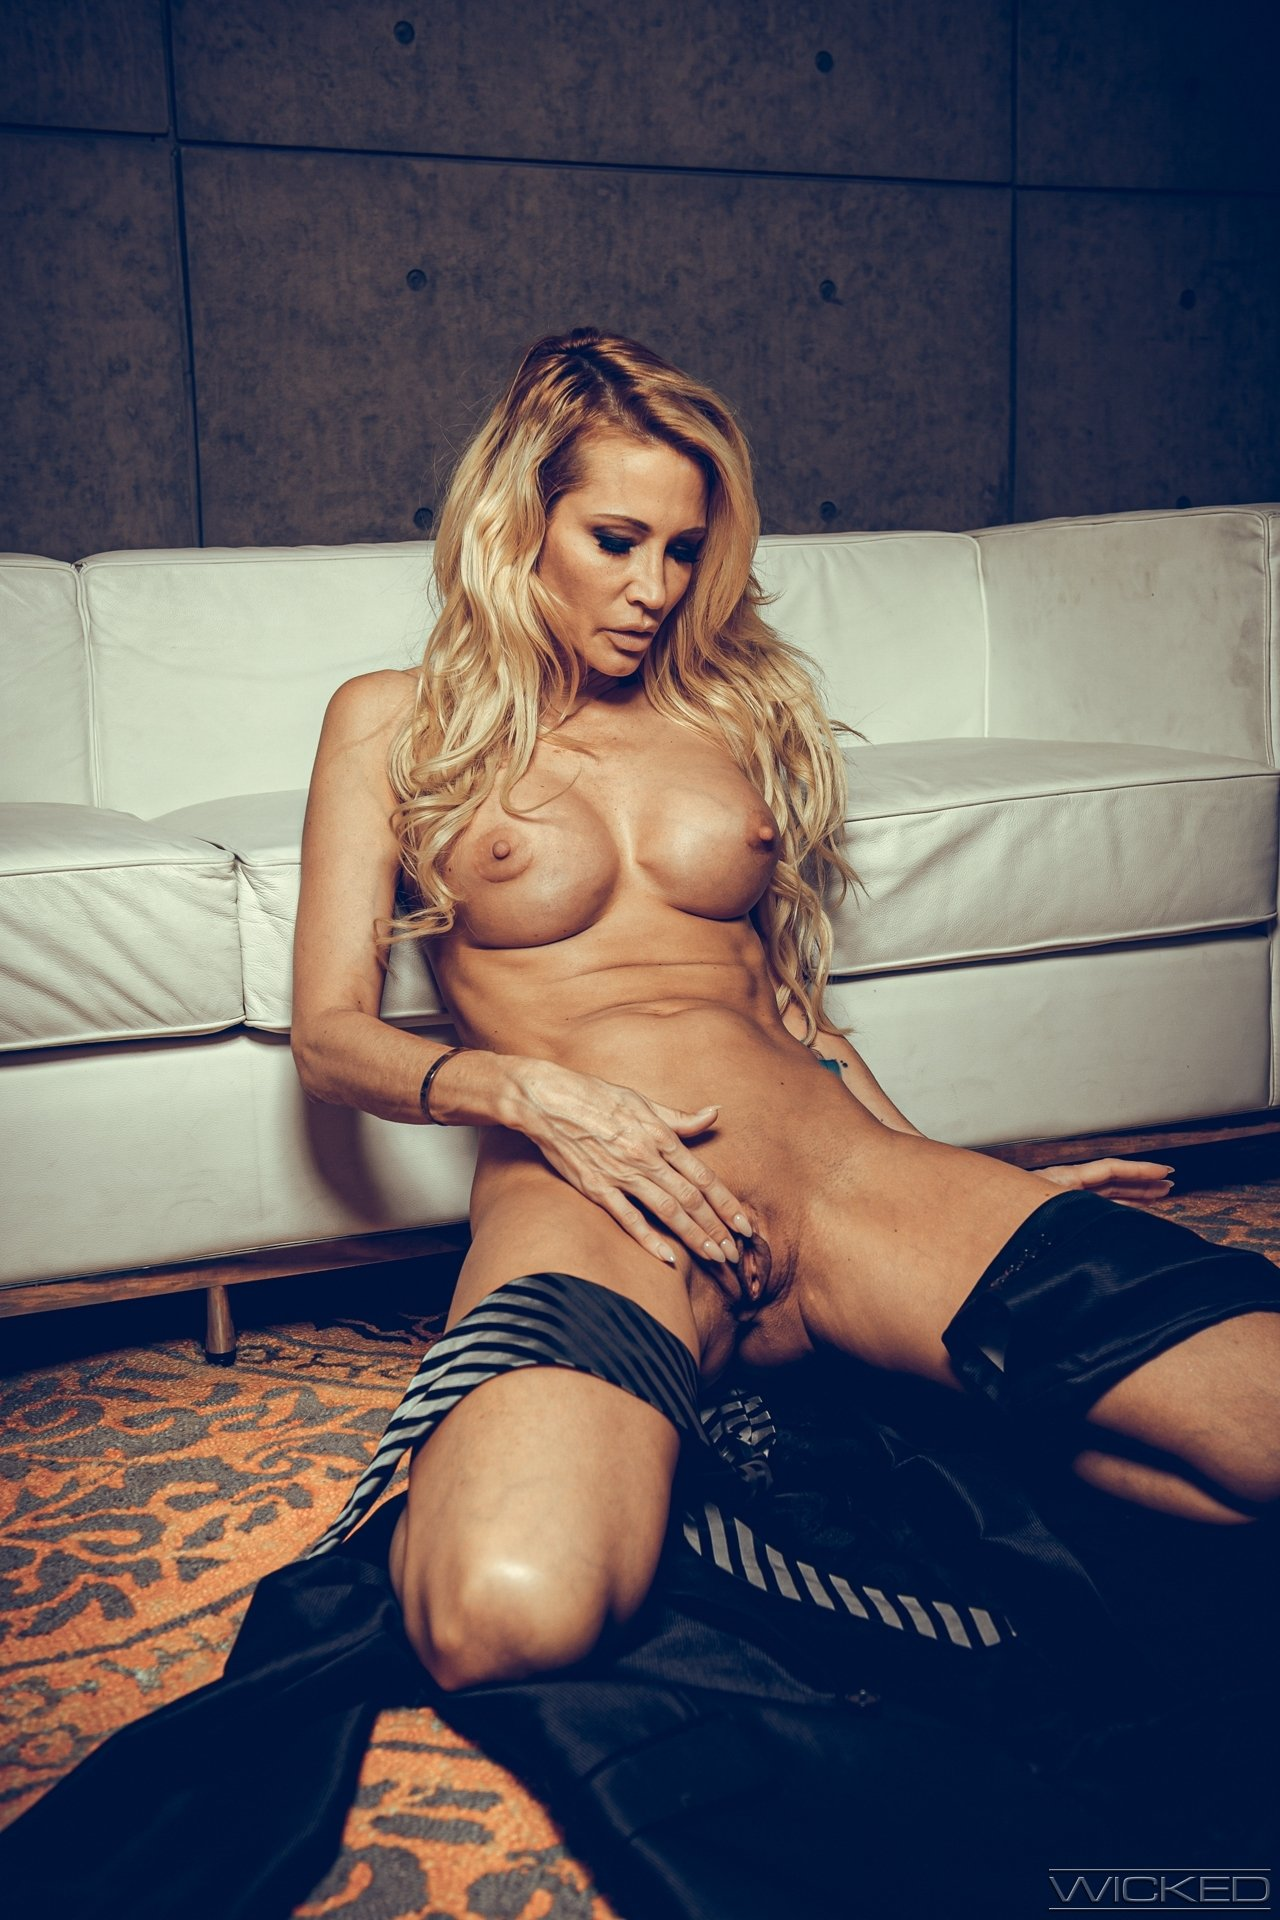 Girl enjoys her first time live webcam show there